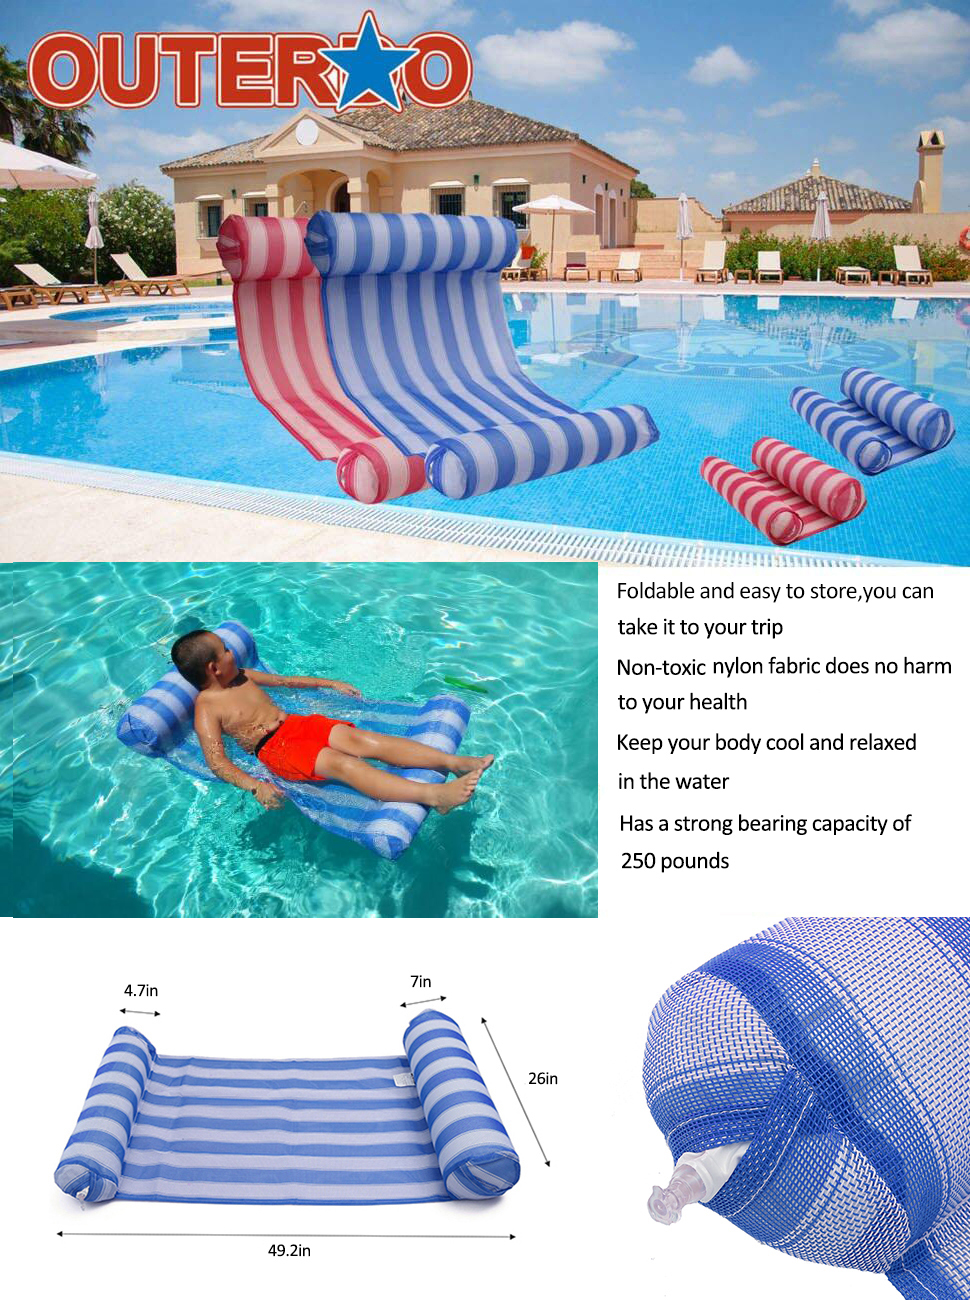 MOWE Buoyancy Rod Swimming Floating Chair Pool Seats Pool Noodle Chair Pool Floating Bed Chair for Kids /& Adults 3 Colors Blue 651500mm